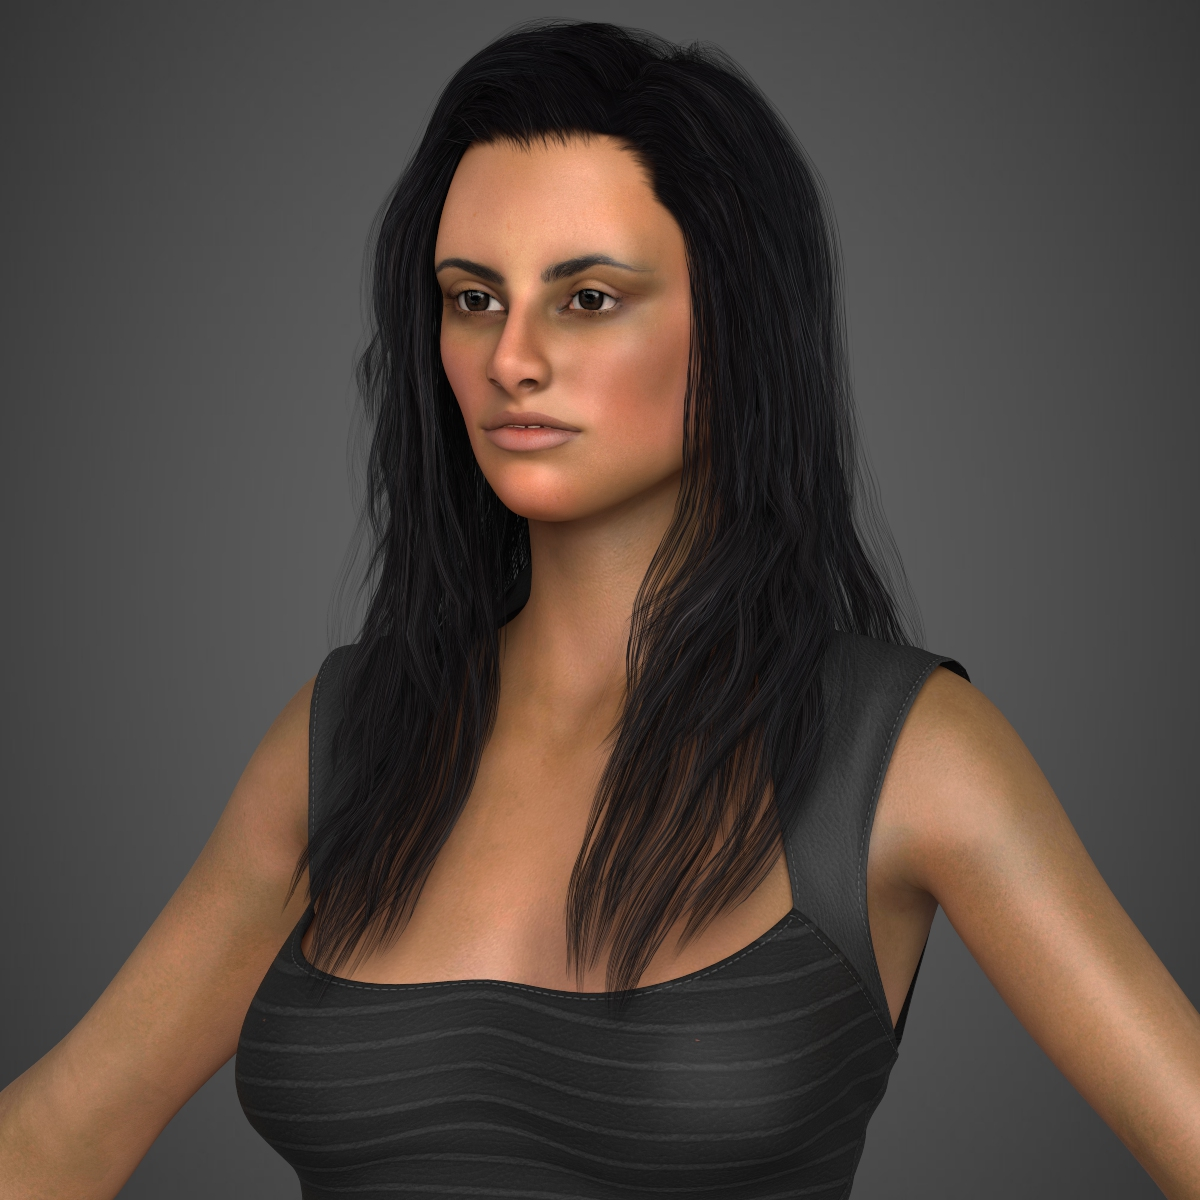 young sexy woman 3d model max fbx c4d ma mb texture obj 221212